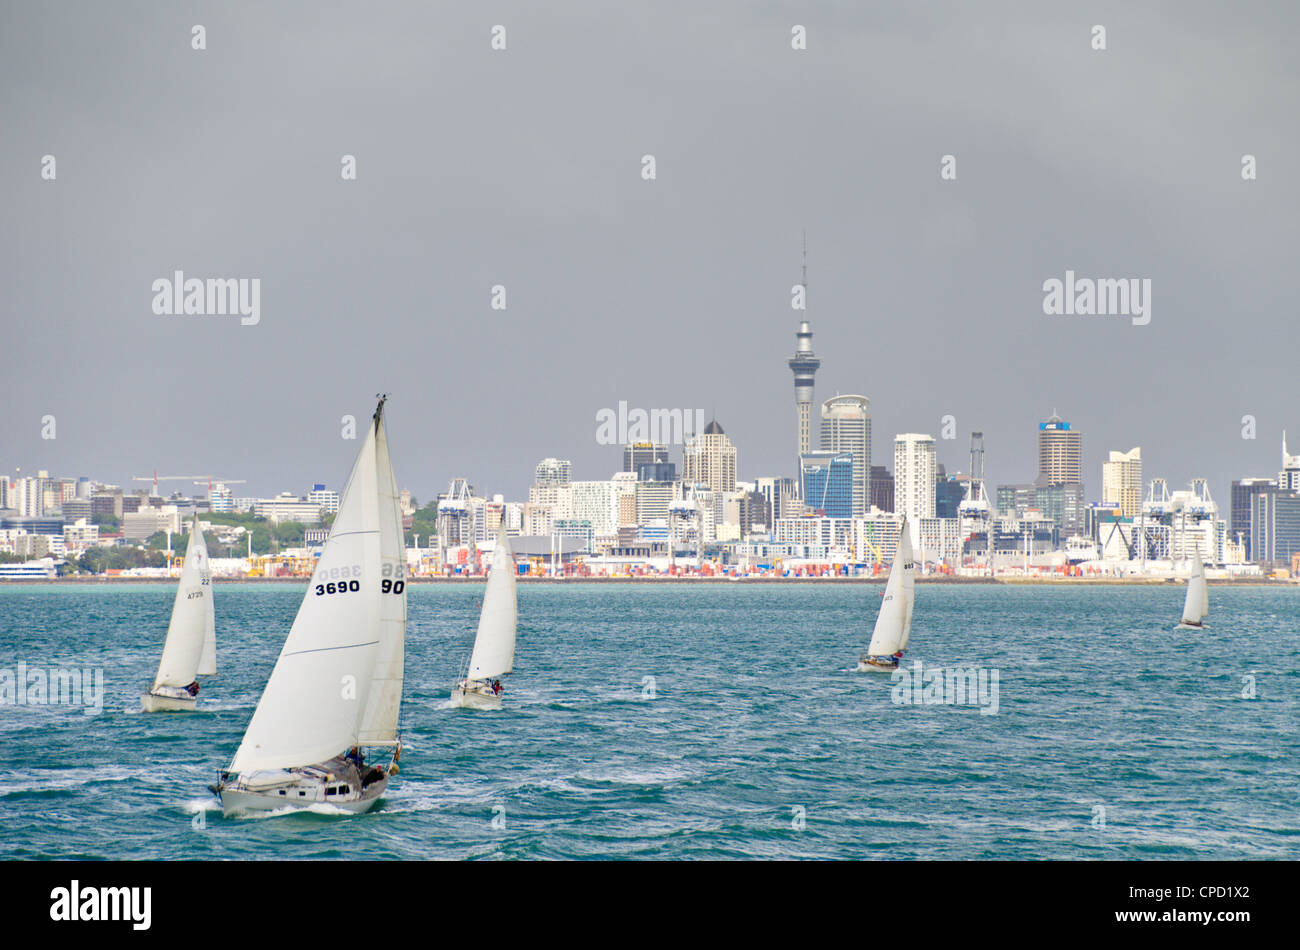 Auckland, North Island, New Zealand, Pacific - Stock Image